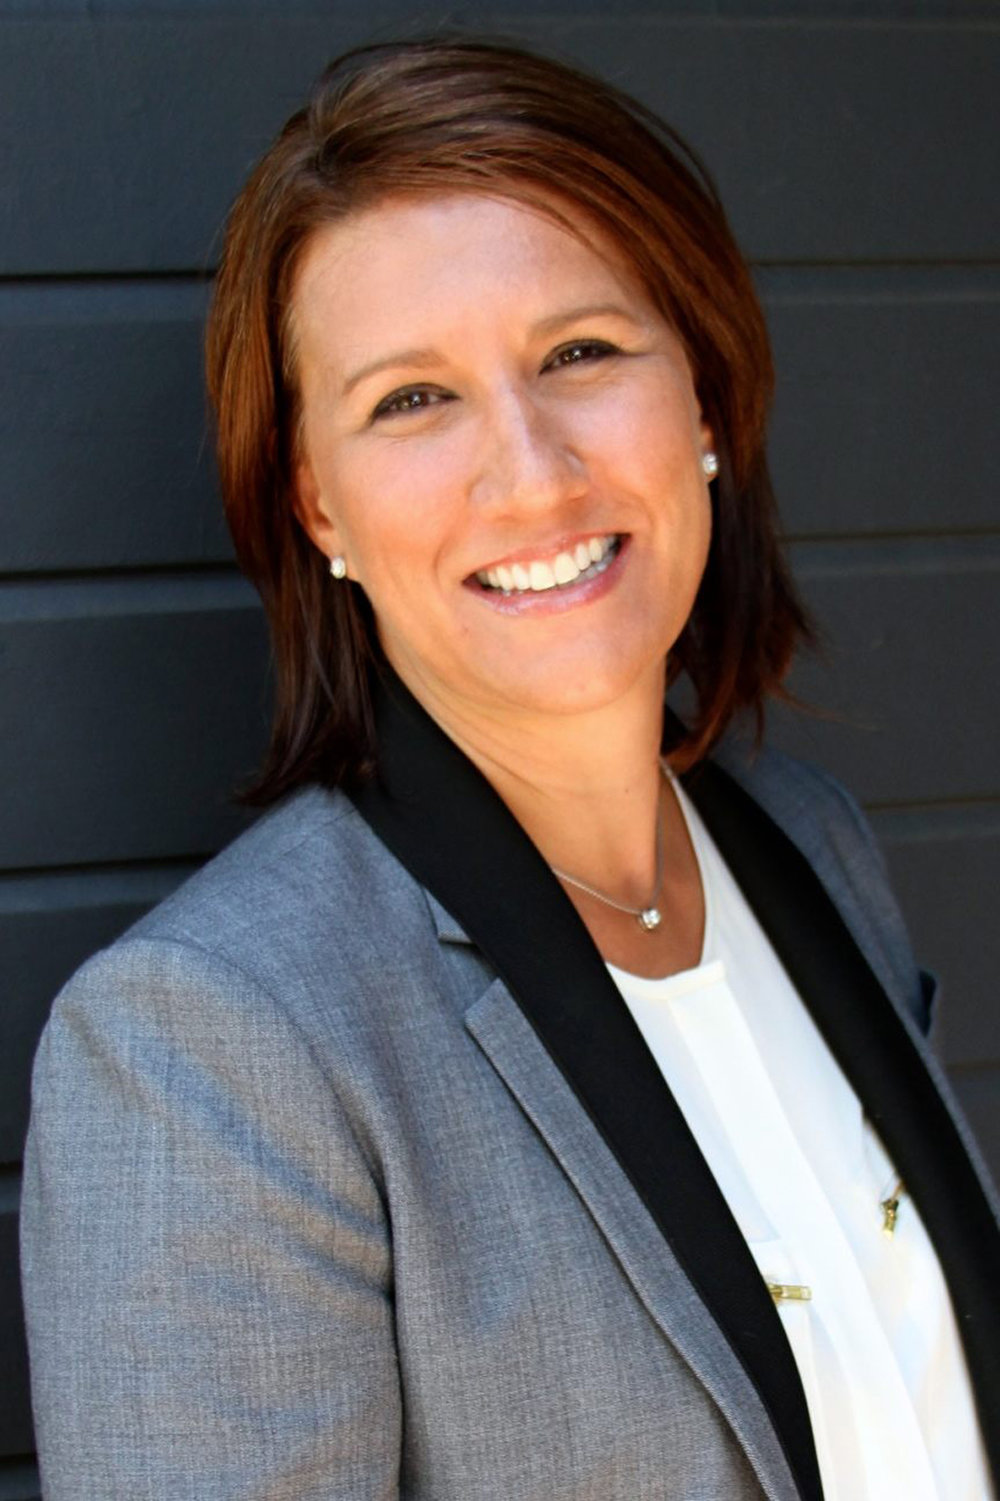 Jenny Wall, Advancing Women Executives Leader